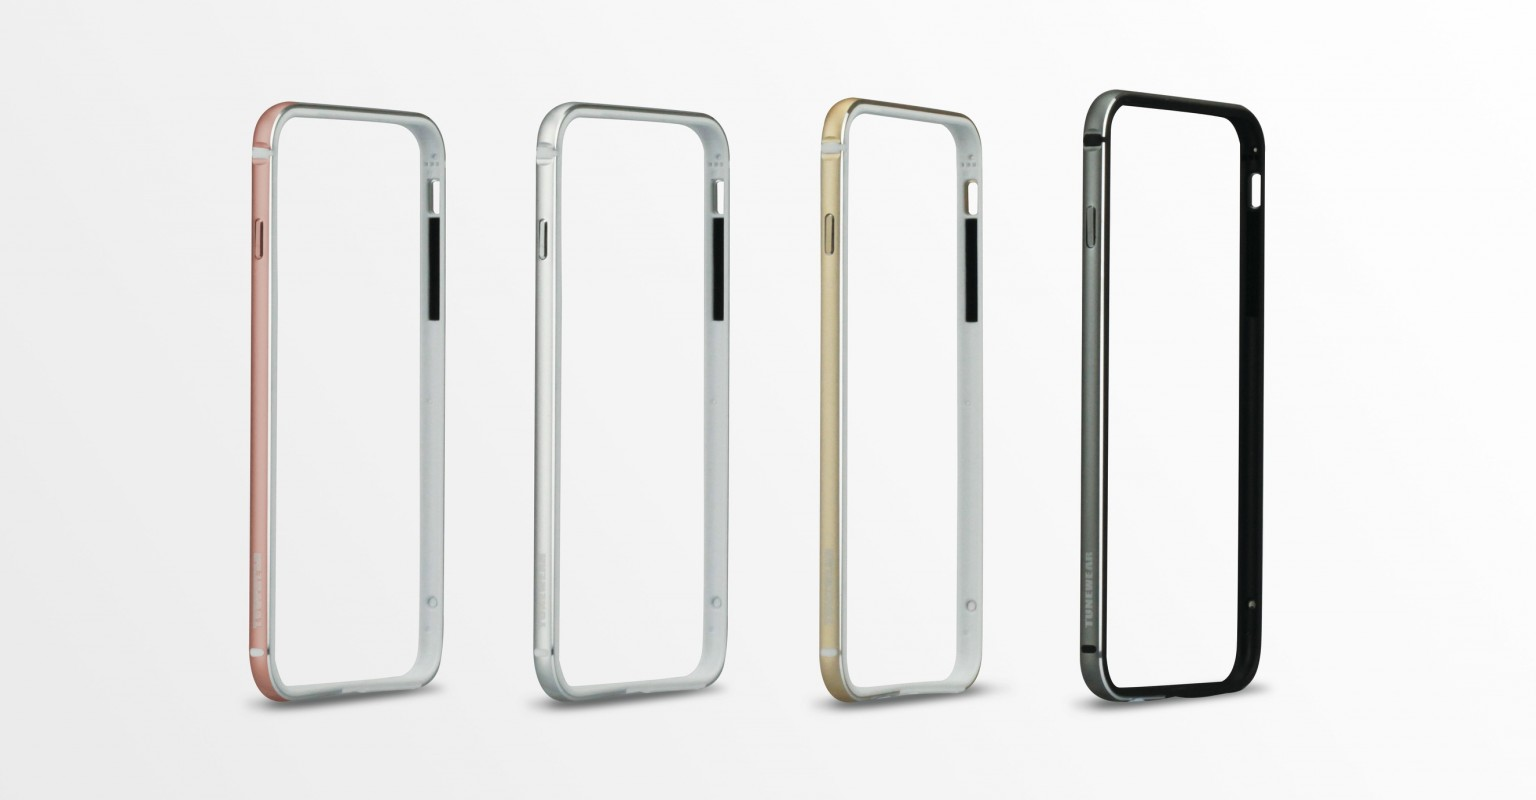 FRAME x FRAME SHOCKMOUNT for iPhone 6s/6